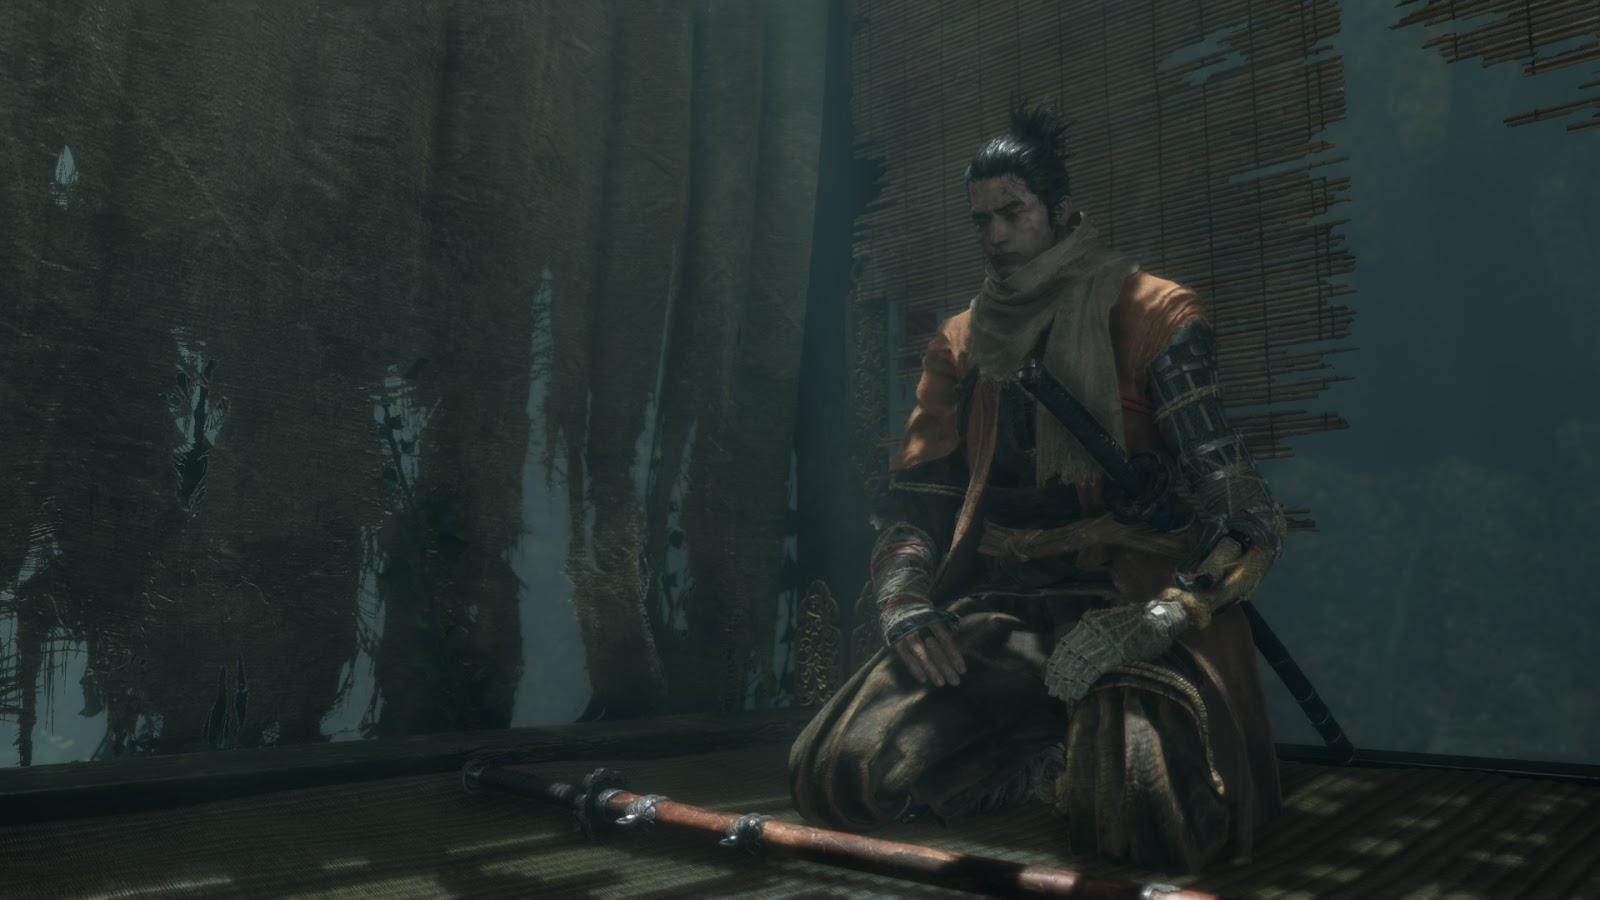 Wolf, the protagonist of Sekiro, resting.